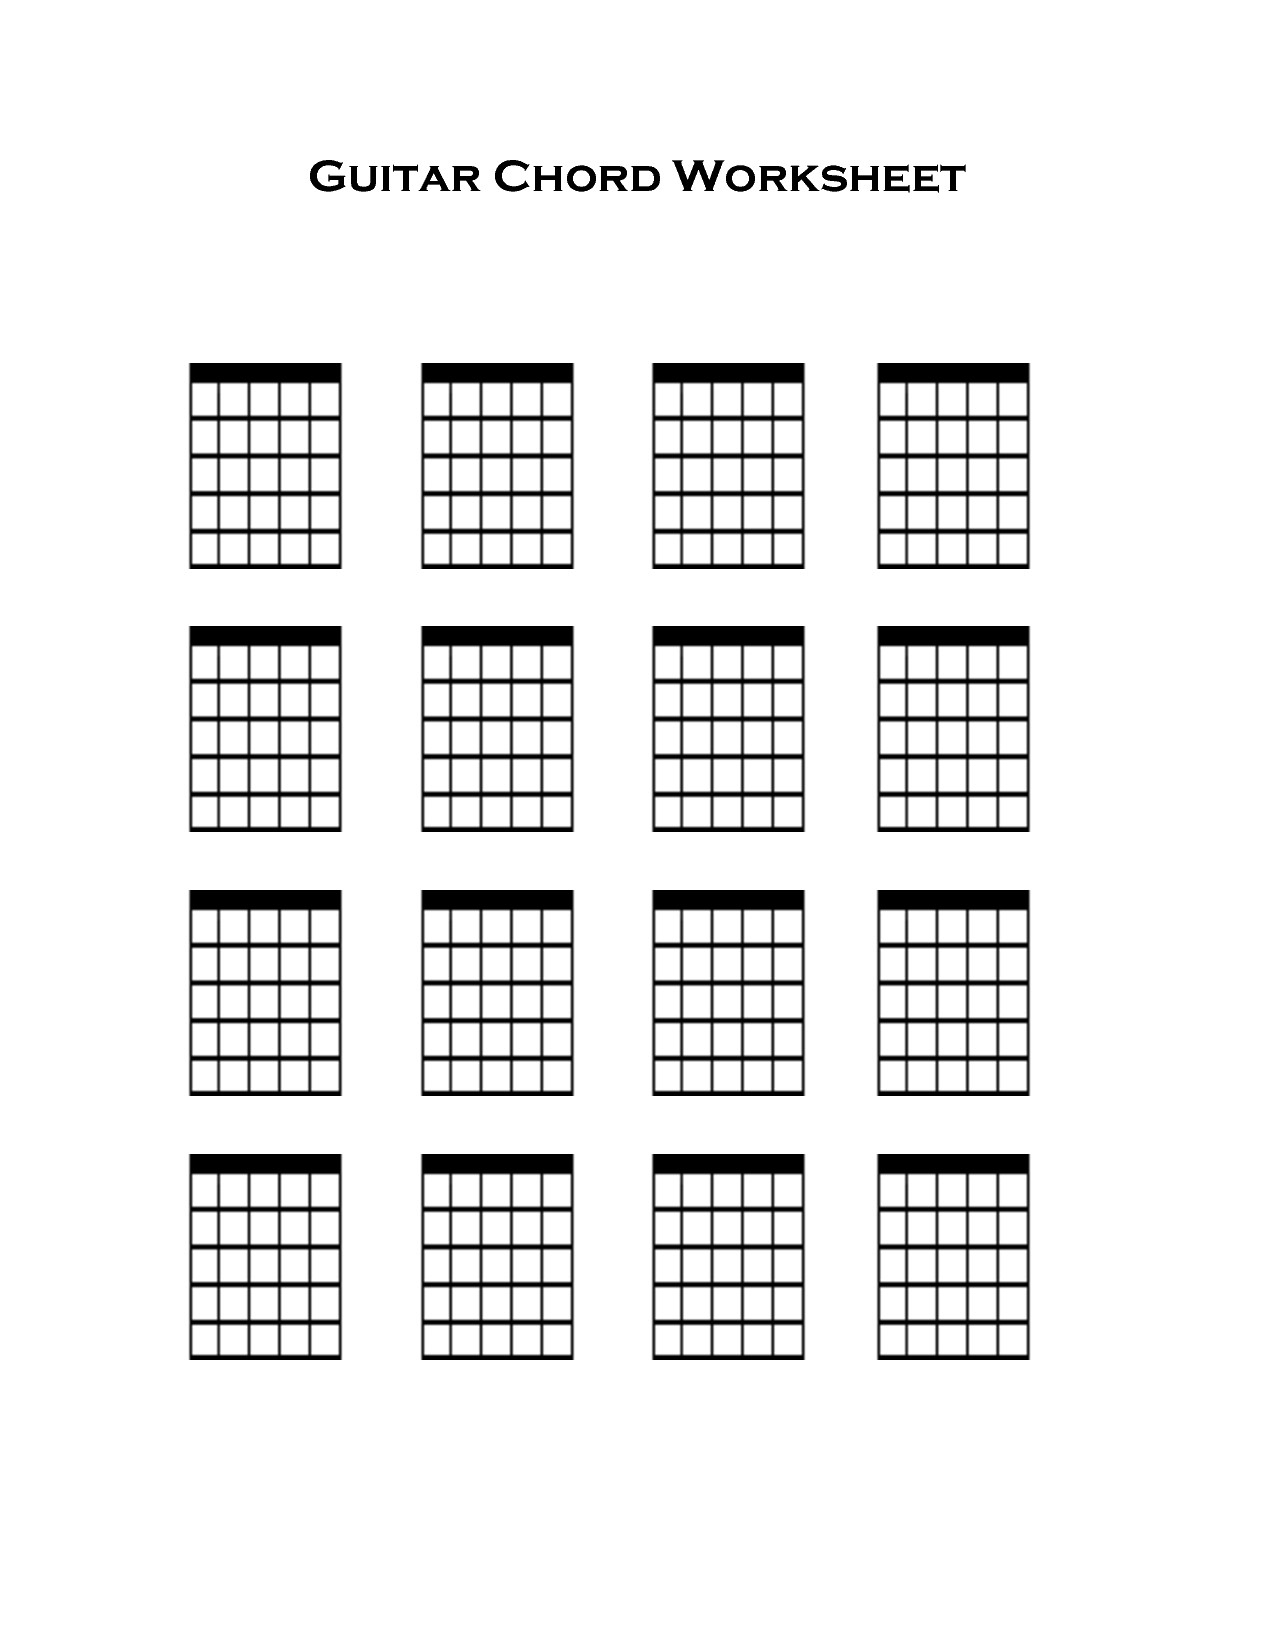 Blank Guitar Chord Chart Guitar Chords Playing Guitar and Guitar On Pinterest